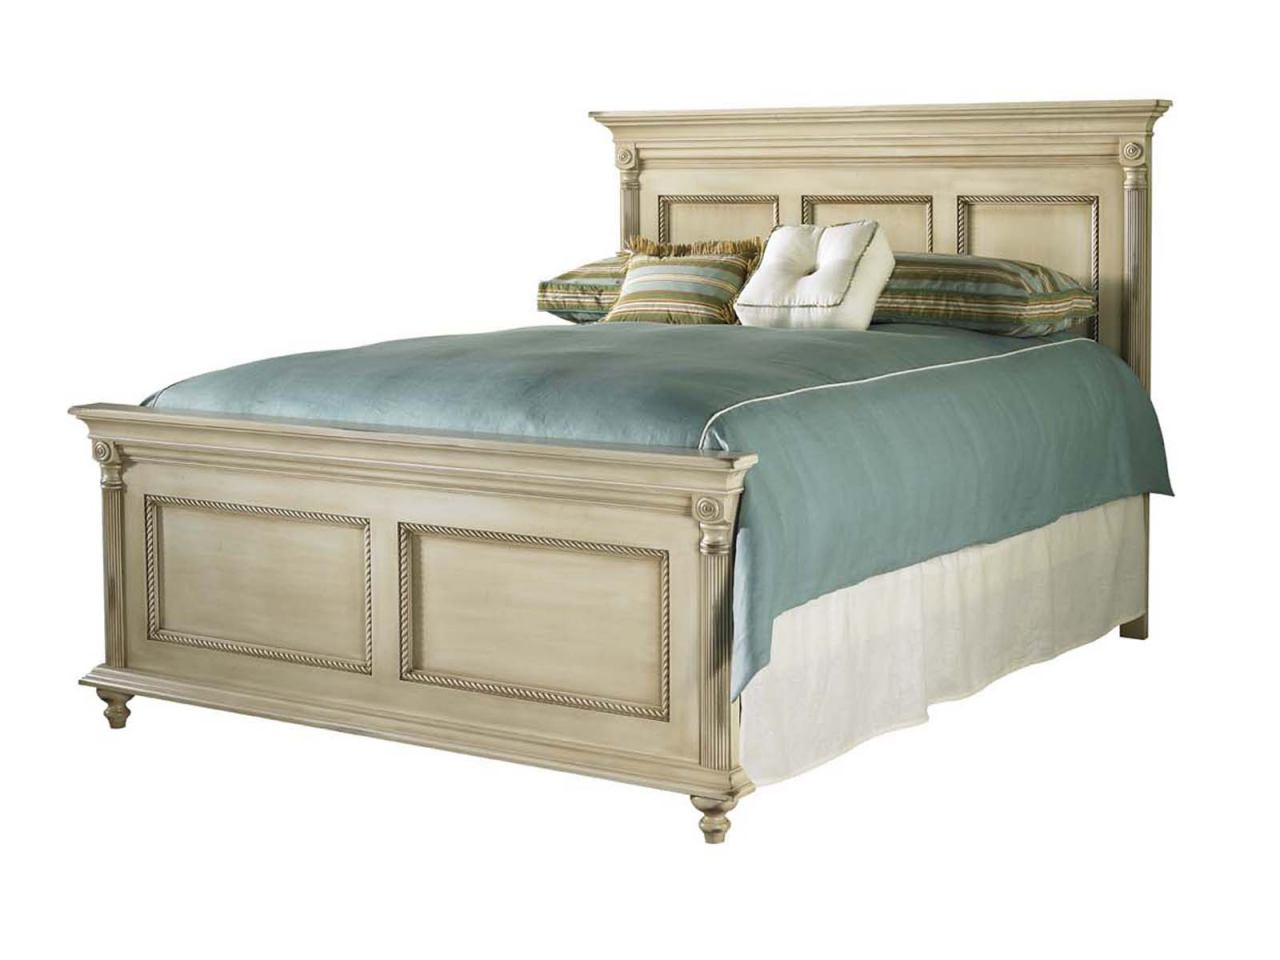 Image of: Durham Furniture Savile Row Cal King Panel Bed In Antique Cream 980 144ck Antc